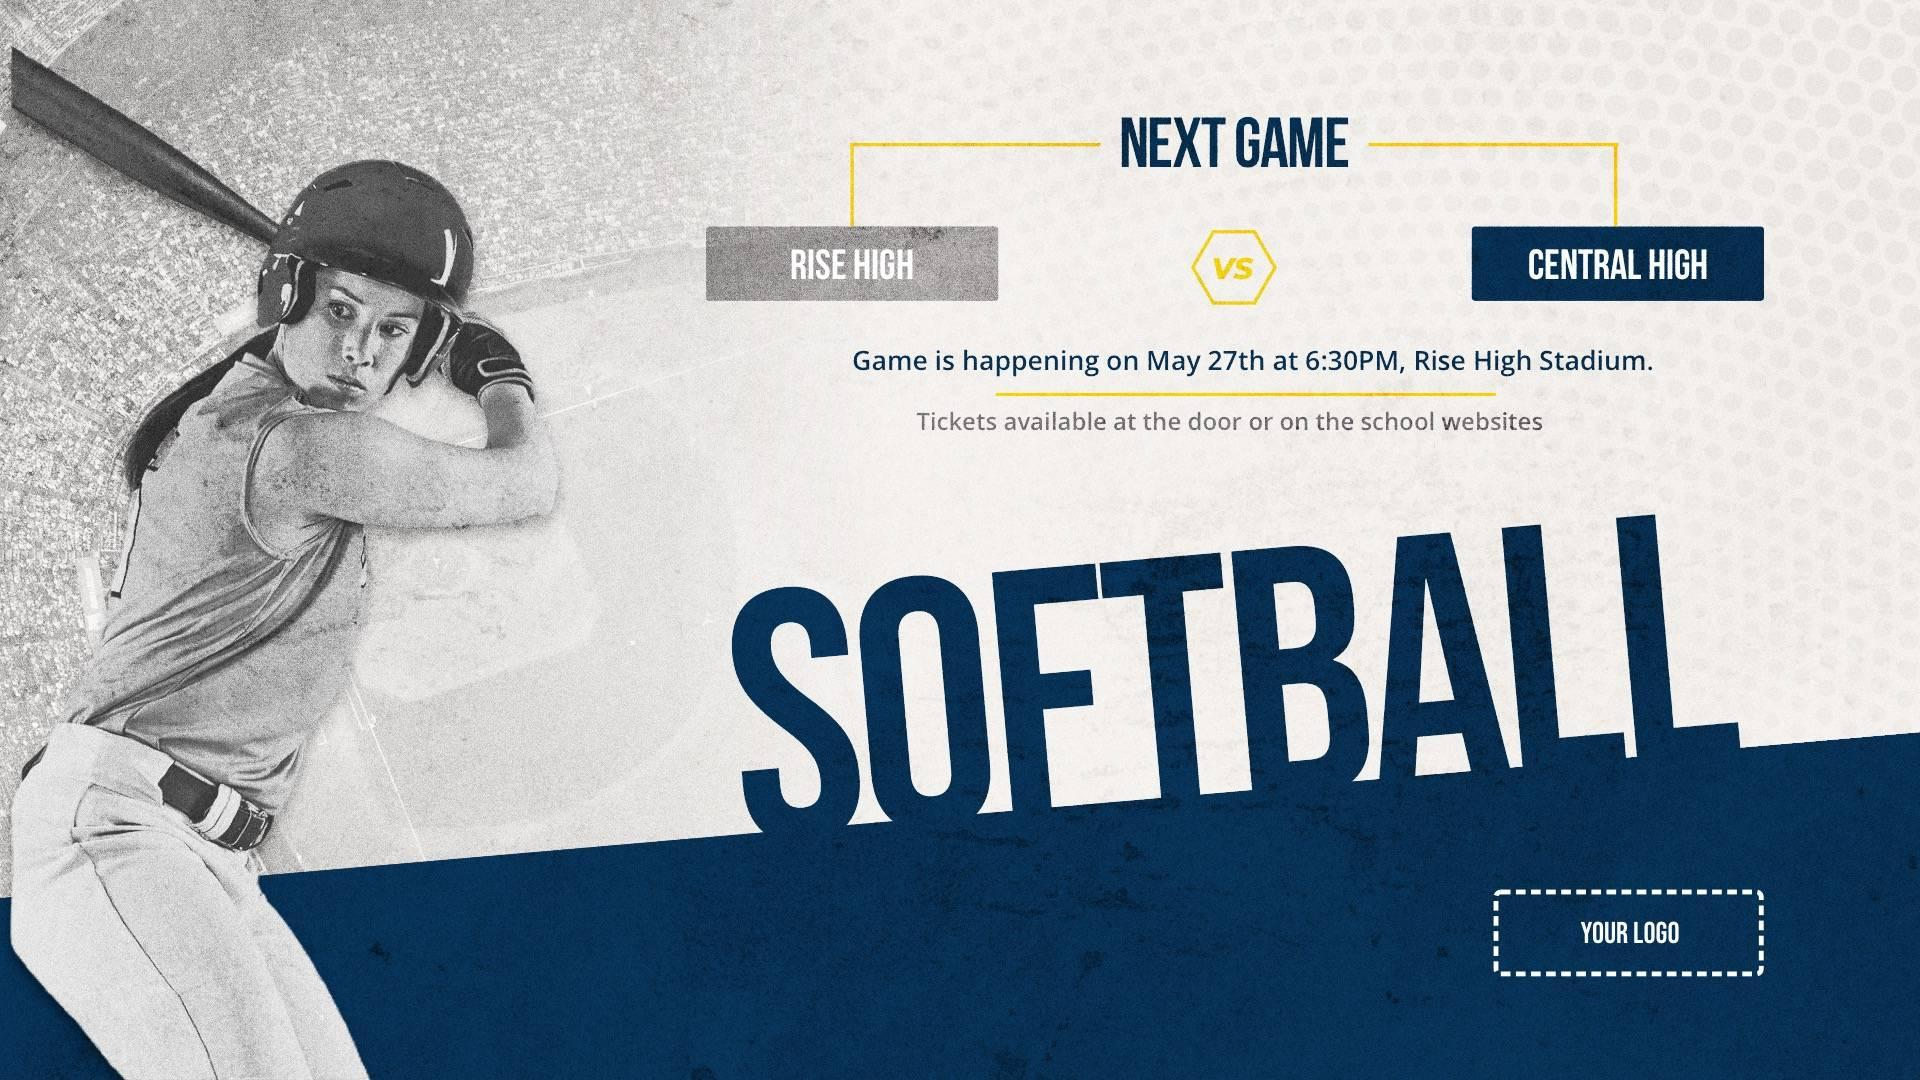 Softball Game - Sports Digital Signage Template